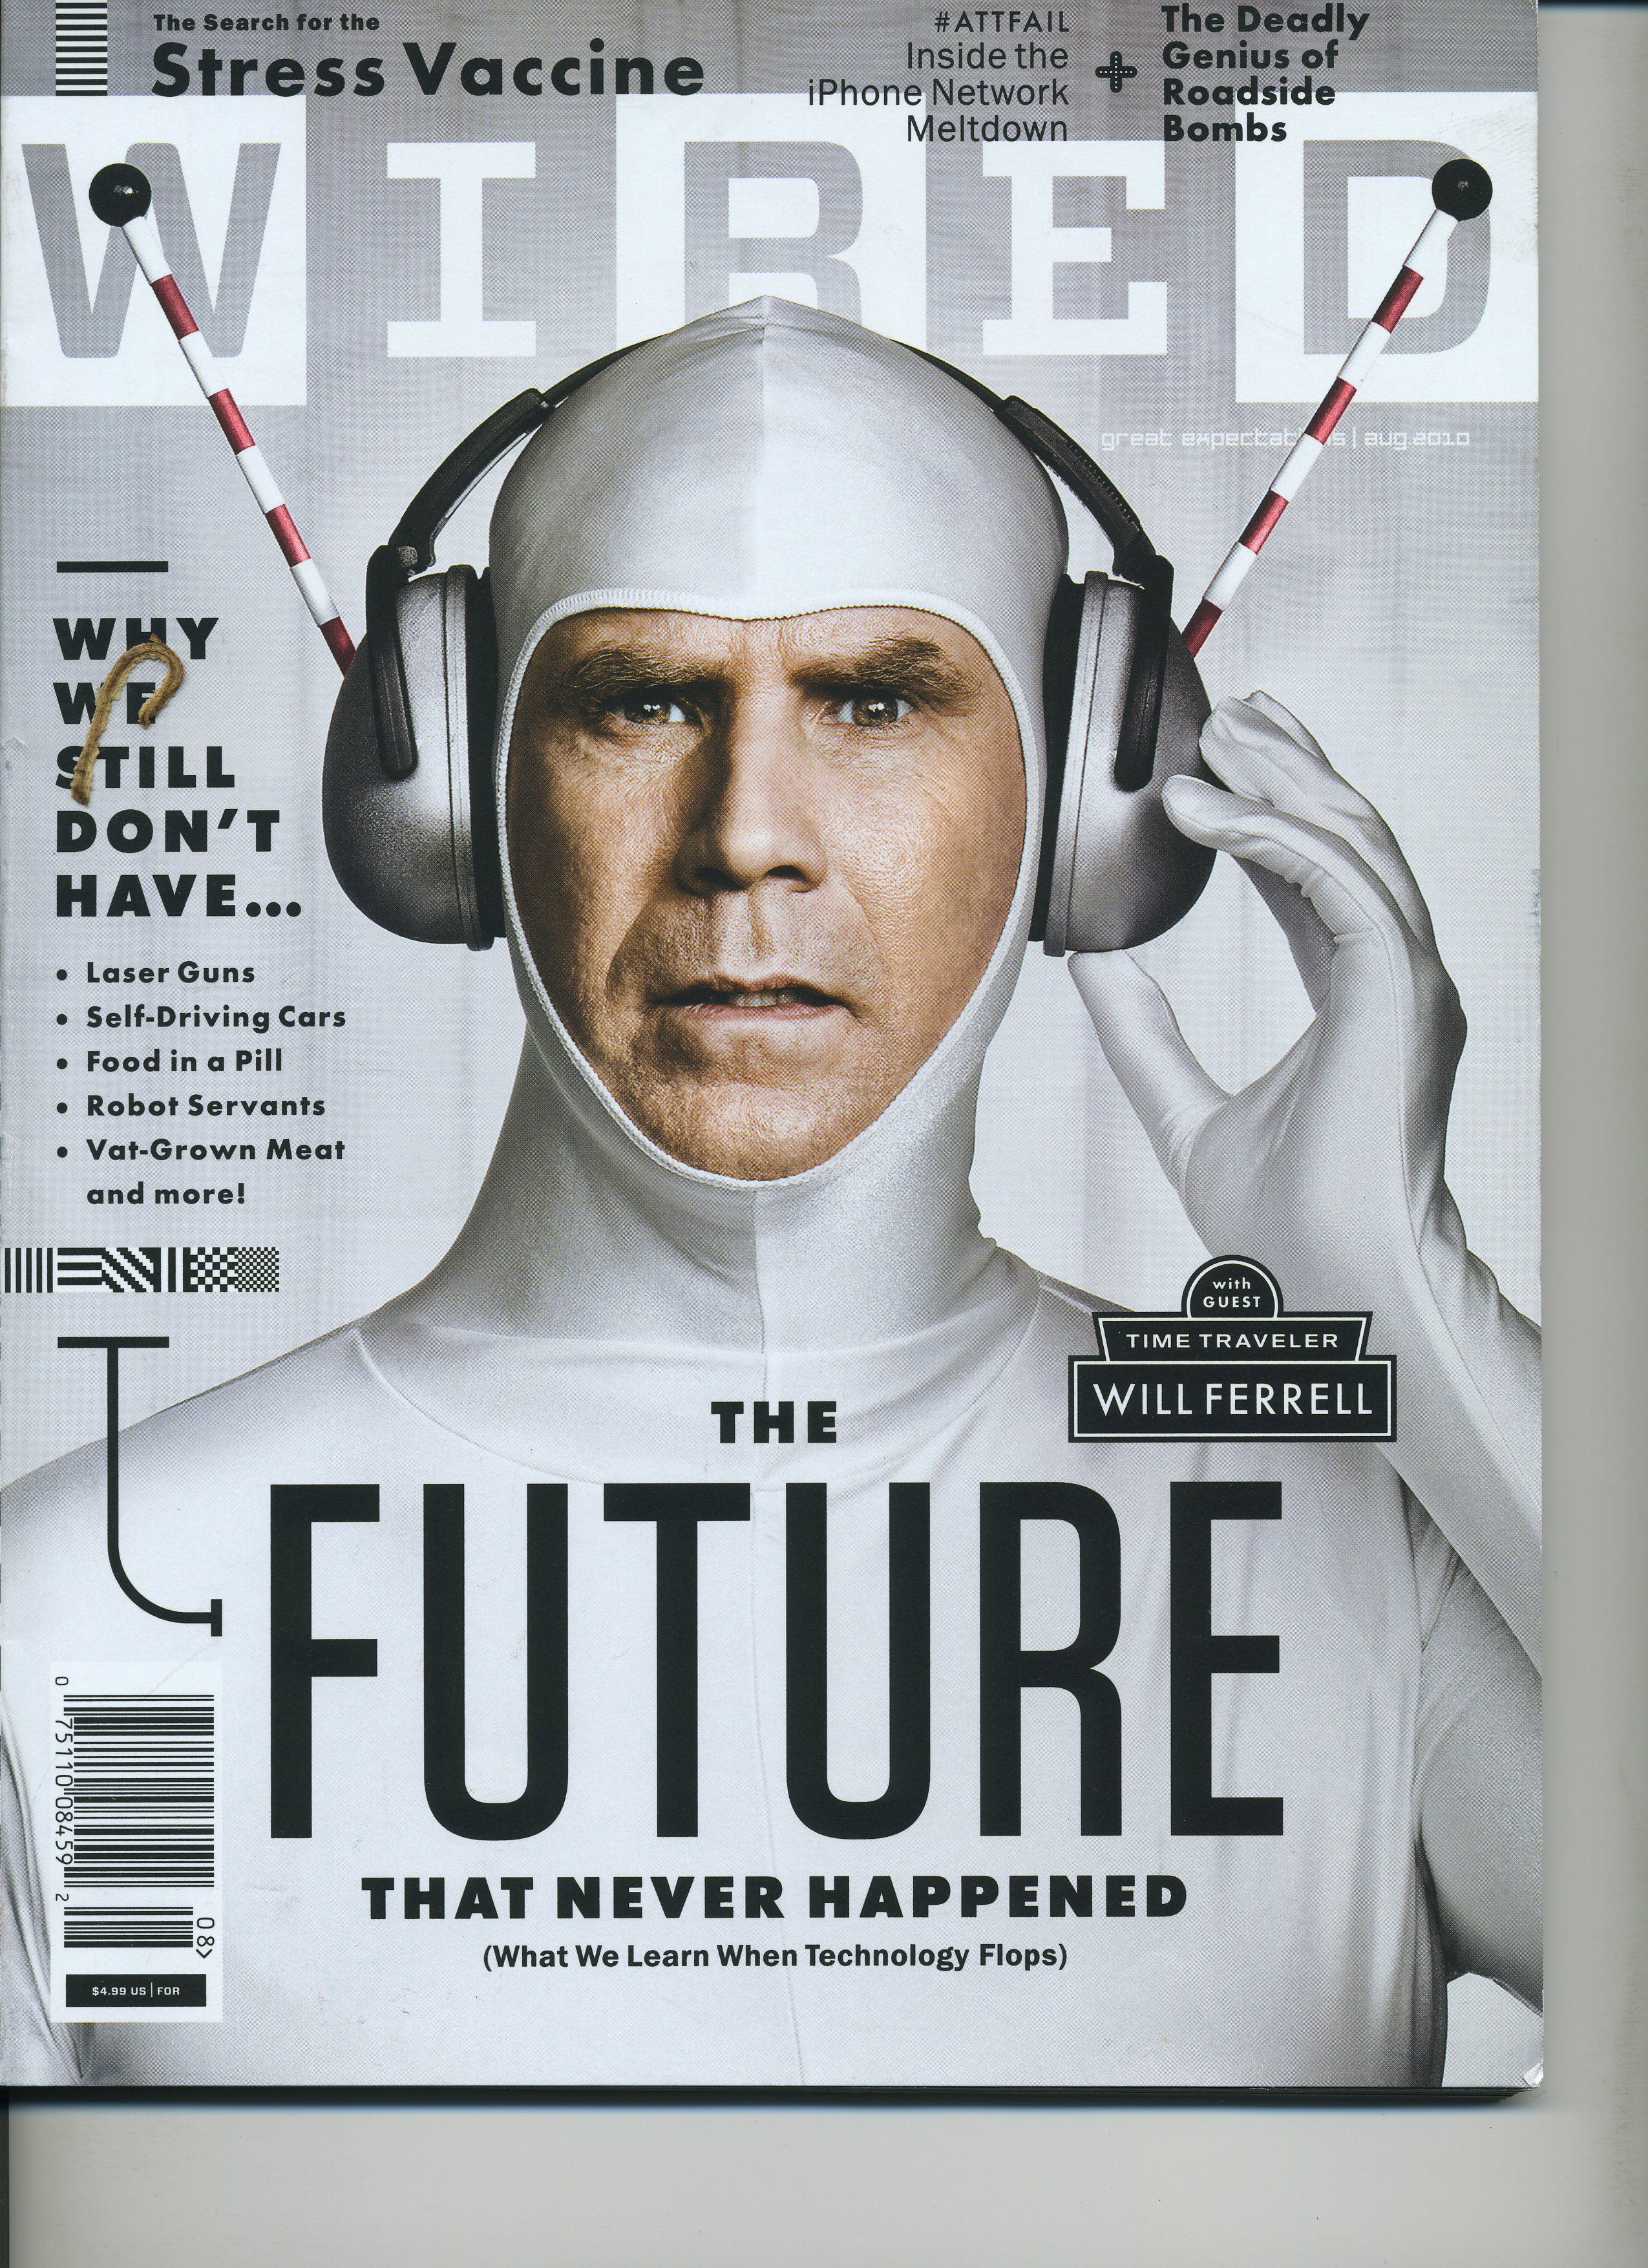 Cover | Wired | "|2550|3509|?|ad5ee857b363ee2d26c16c8f39123ad0|False|UNSURE|0.3248199224472046